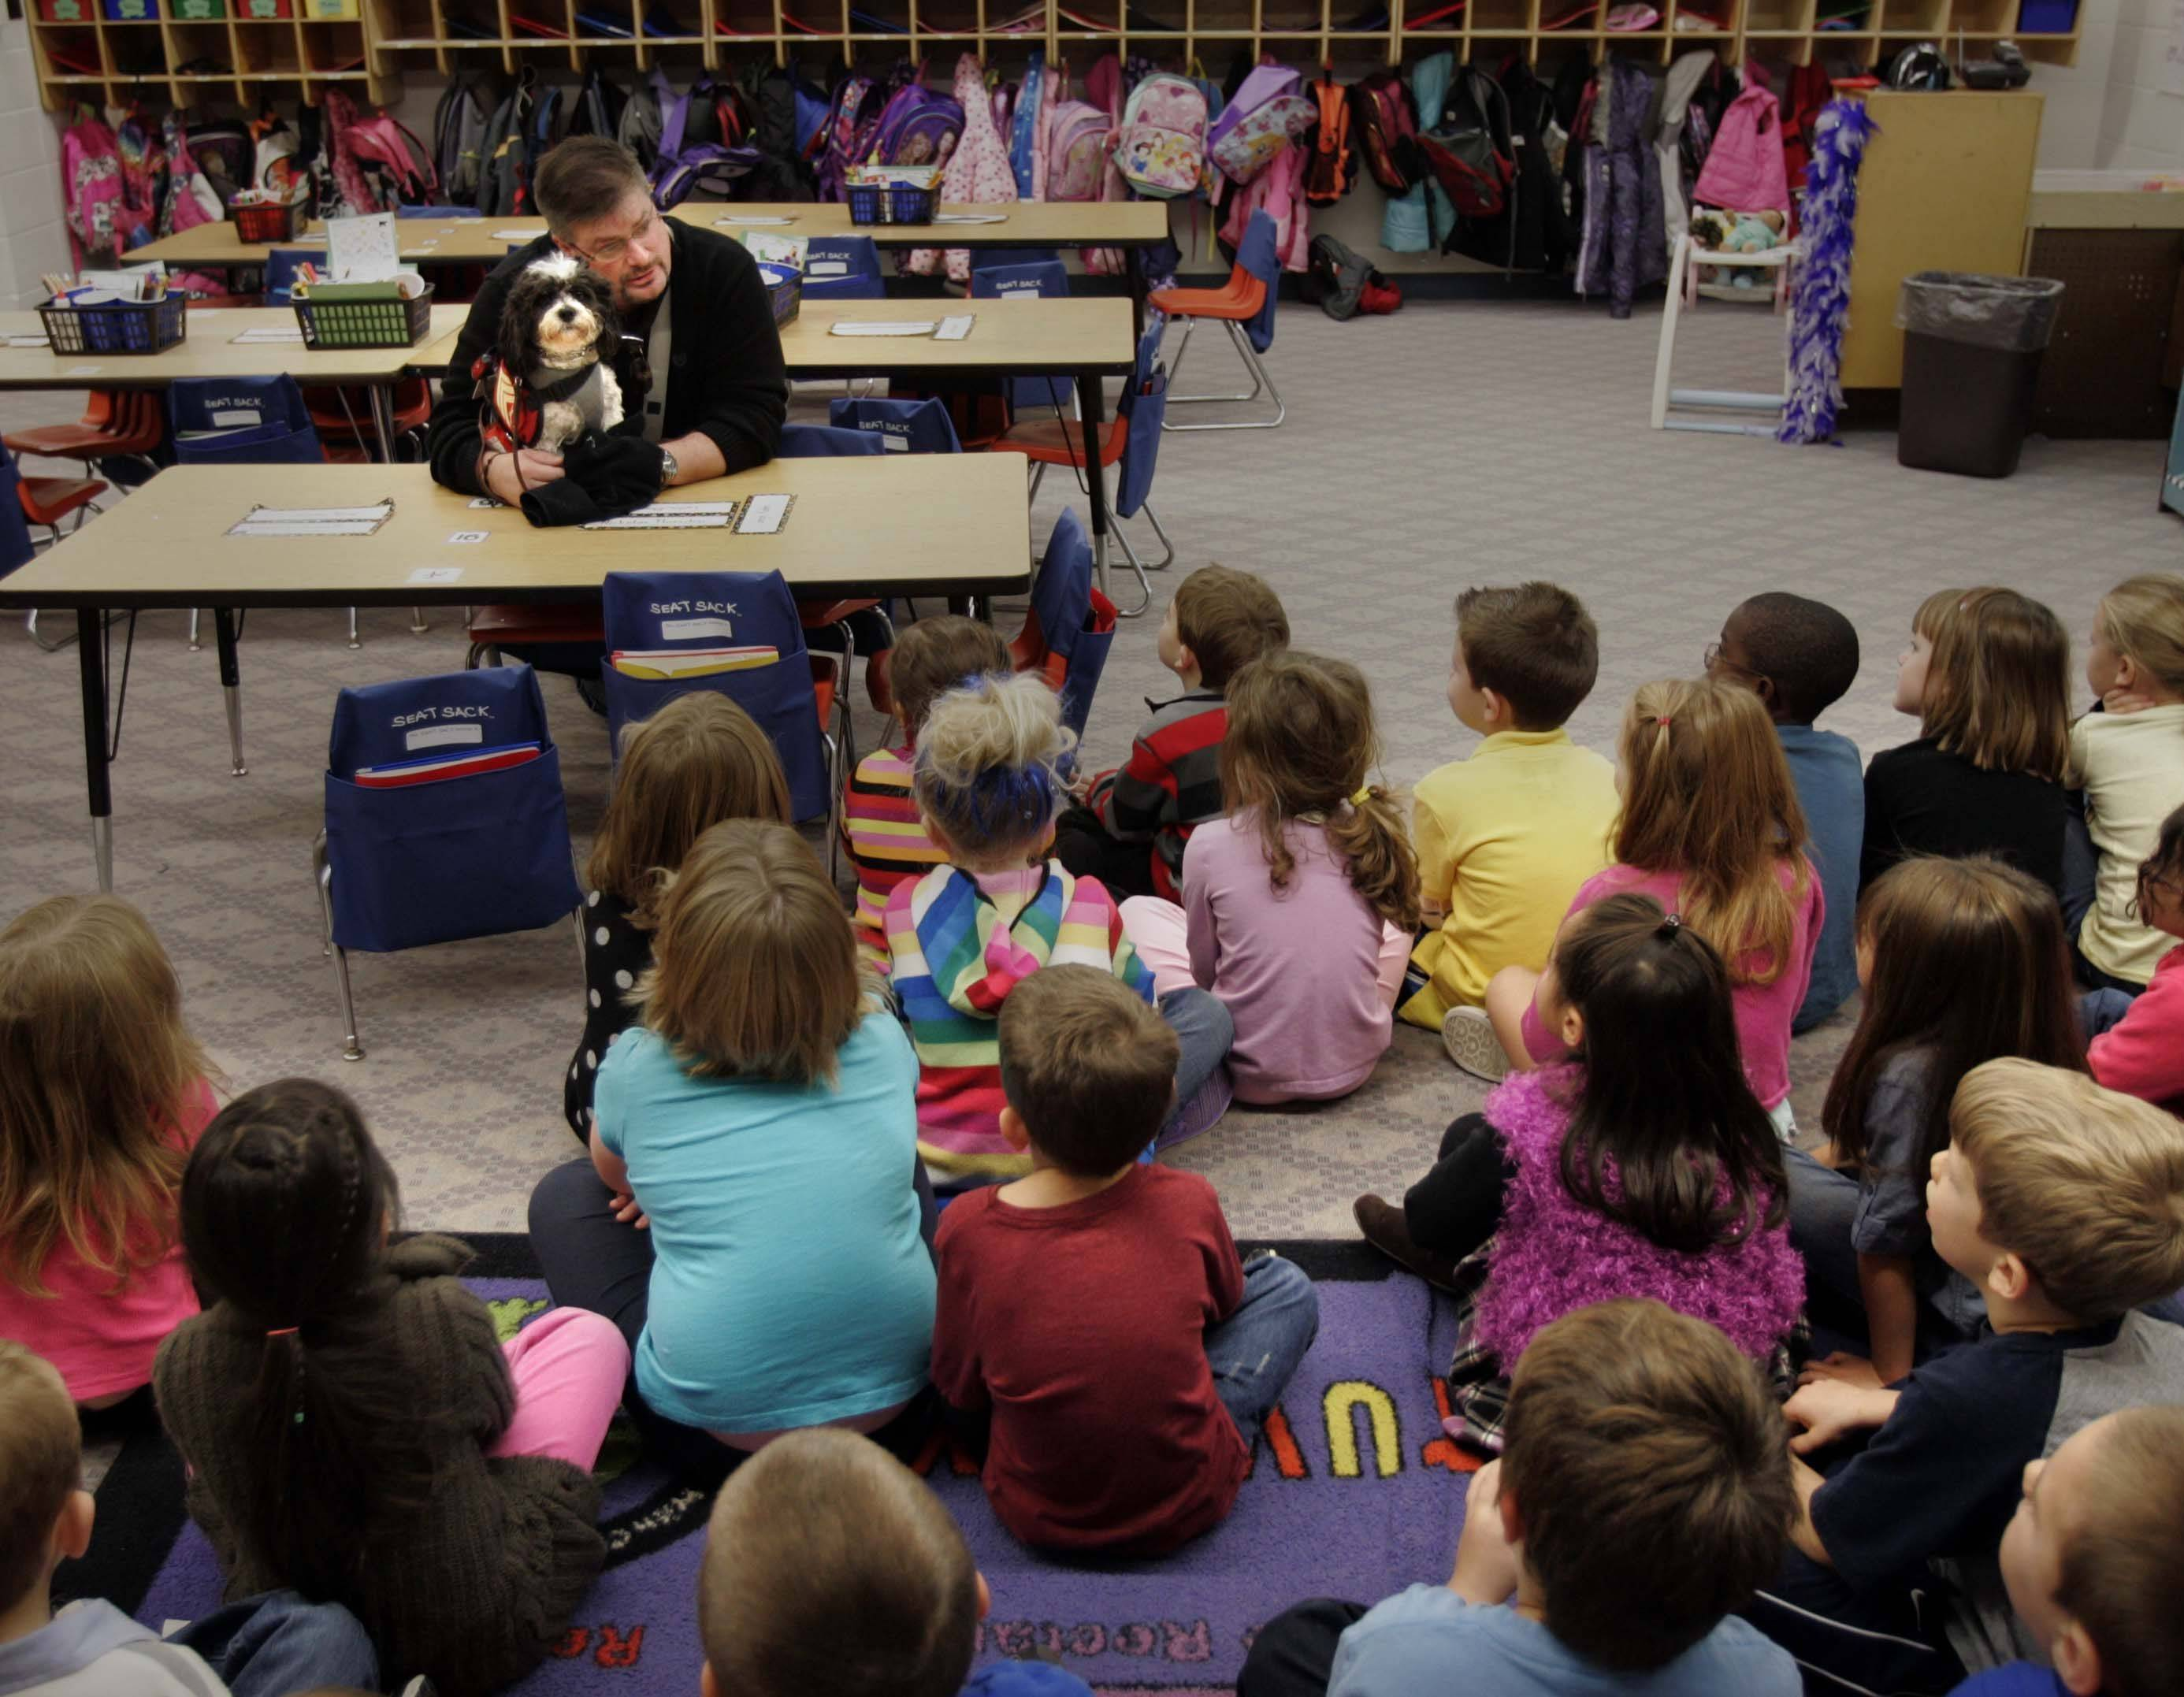 Dan Sauer of Gilberts talks to Caitlin Berry's kindergarten class at Hampshire Elementary School. Sauer, a former sergeant in the Marines, has been working with Chloe, a service dog that helps him deal with PTSD.